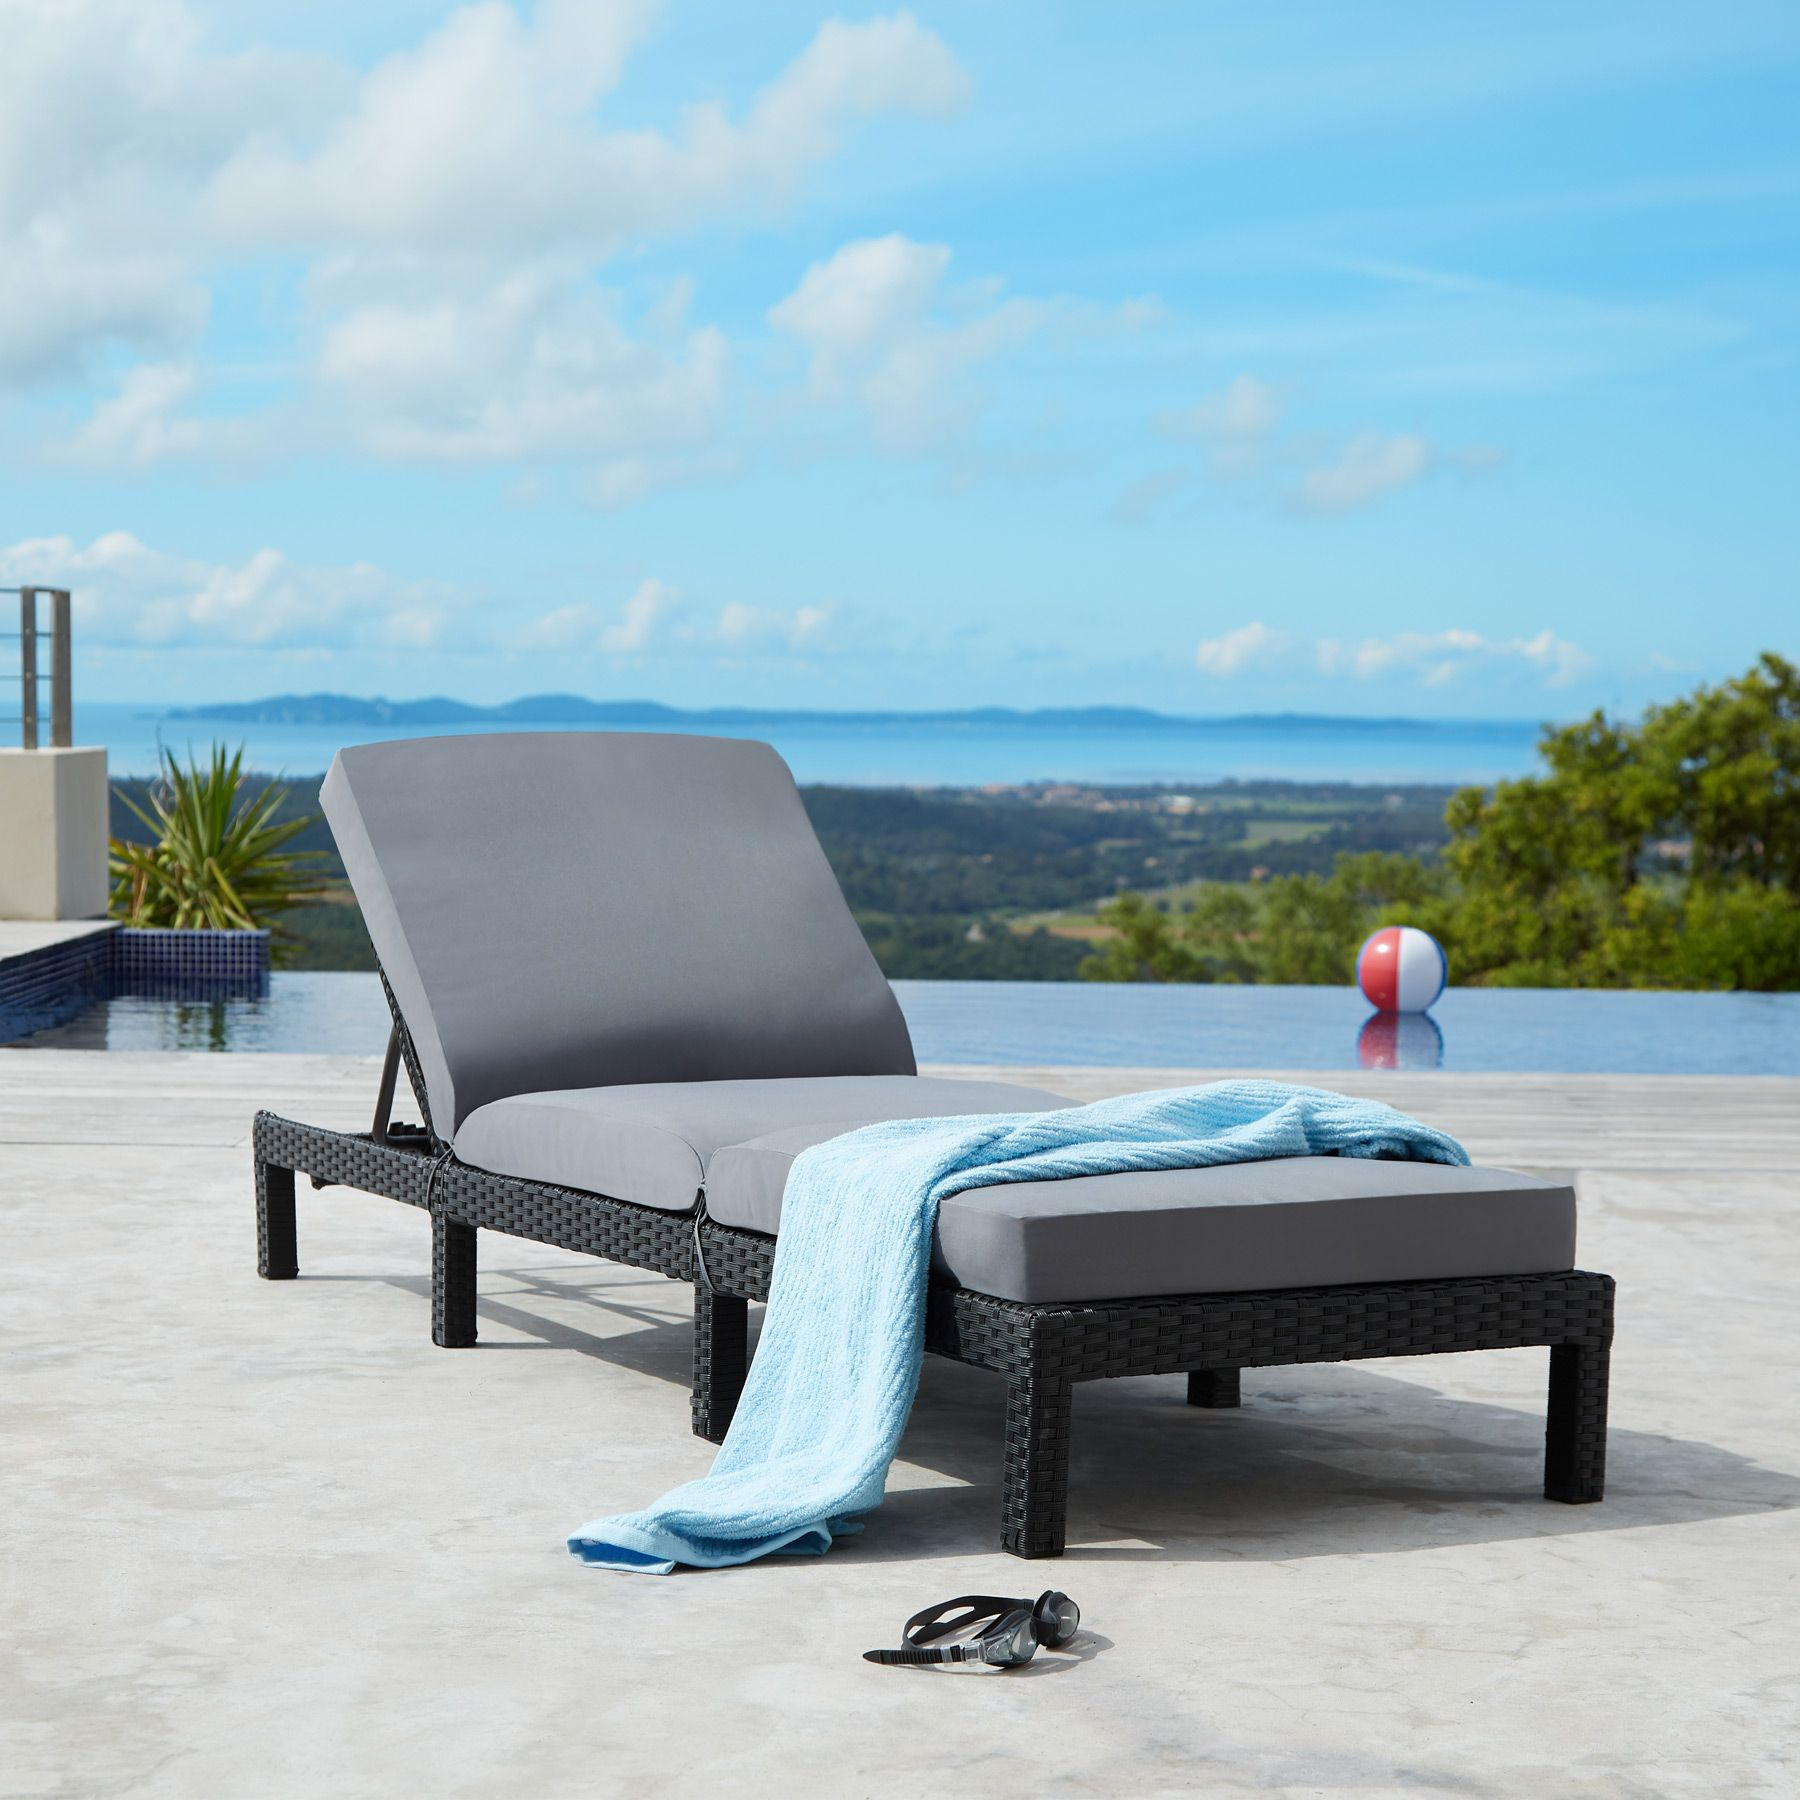 polyrattan sonnenliege gartenliege relaxliege rattanliege garten strandliege ebay. Black Bedroom Furniture Sets. Home Design Ideas